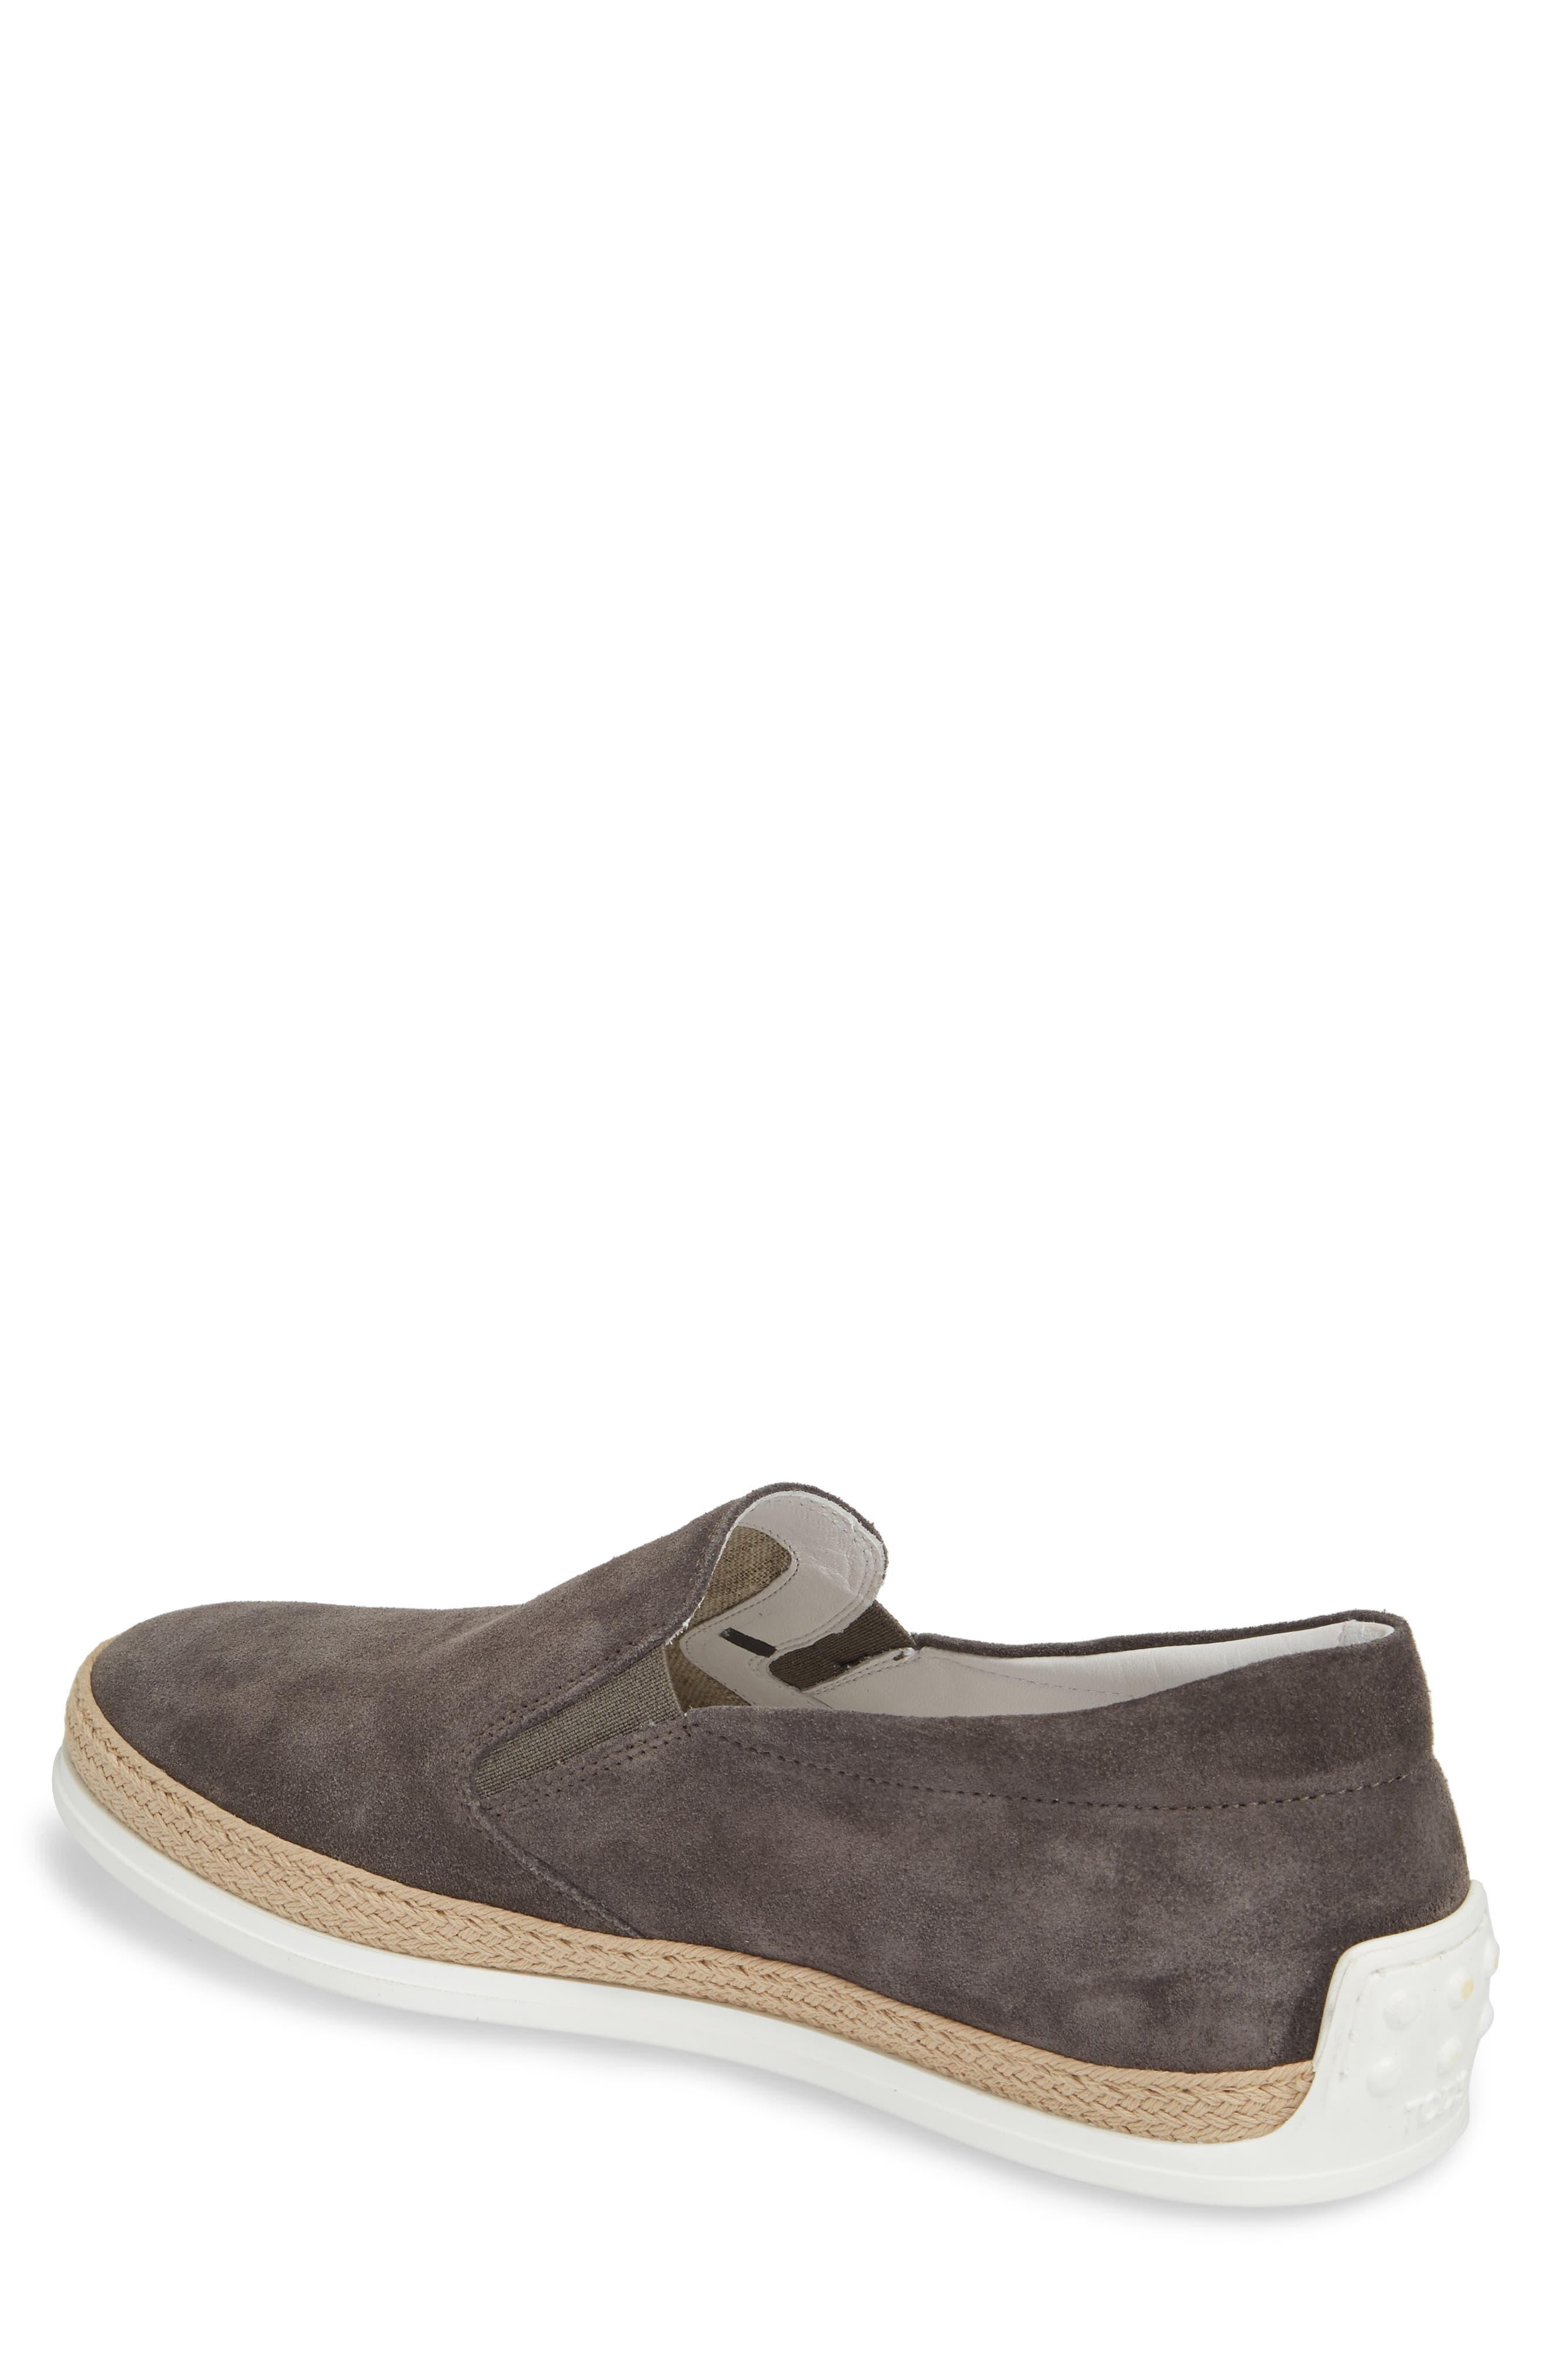 Espadrille Slip-On,                             Alternate thumbnail 2, color,                             030